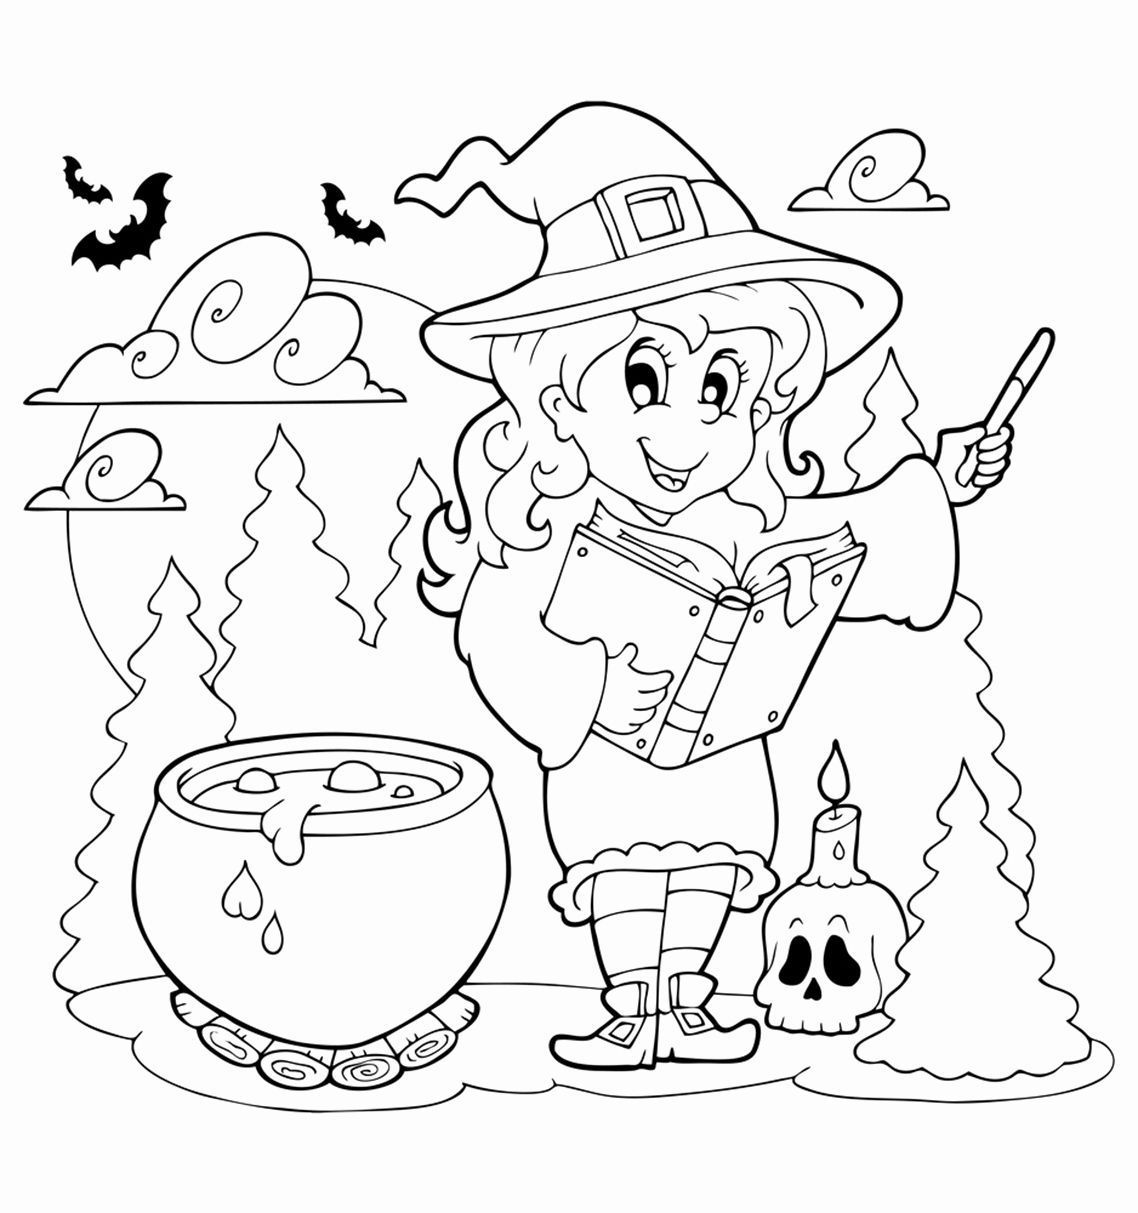 Coloring Activities for toddlers Pdf Awesome Free Coloring